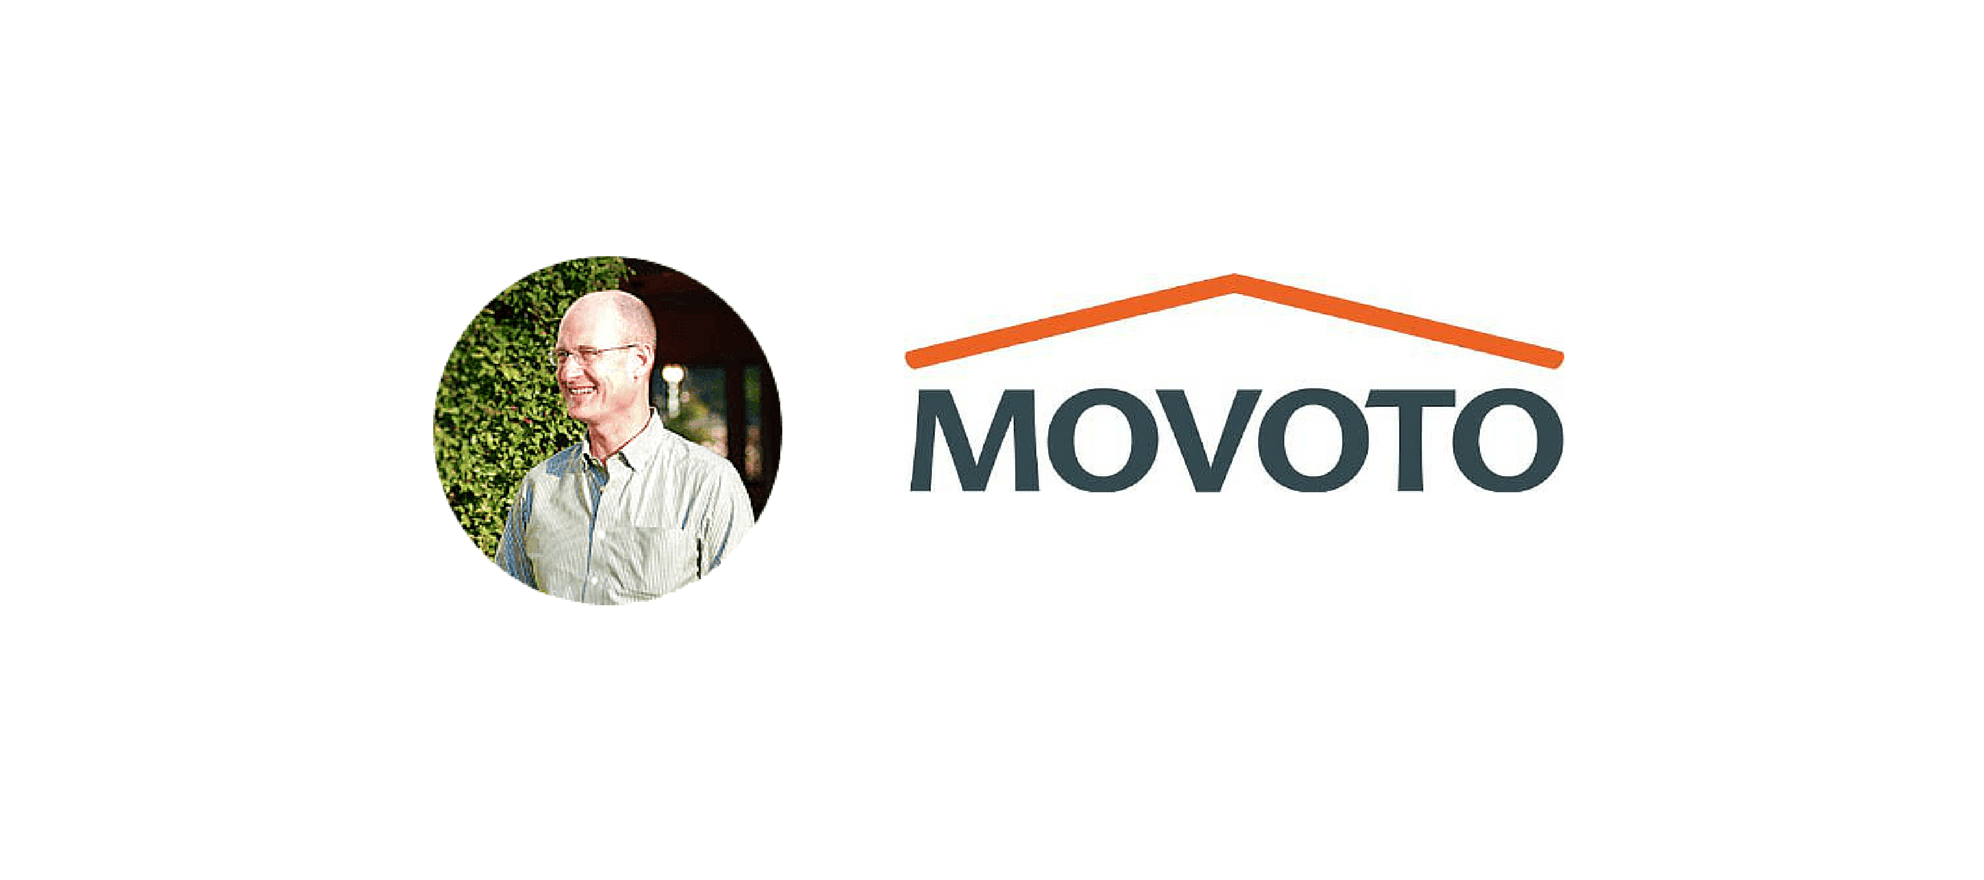 Movoto making headway in quest to play in portal big leagues